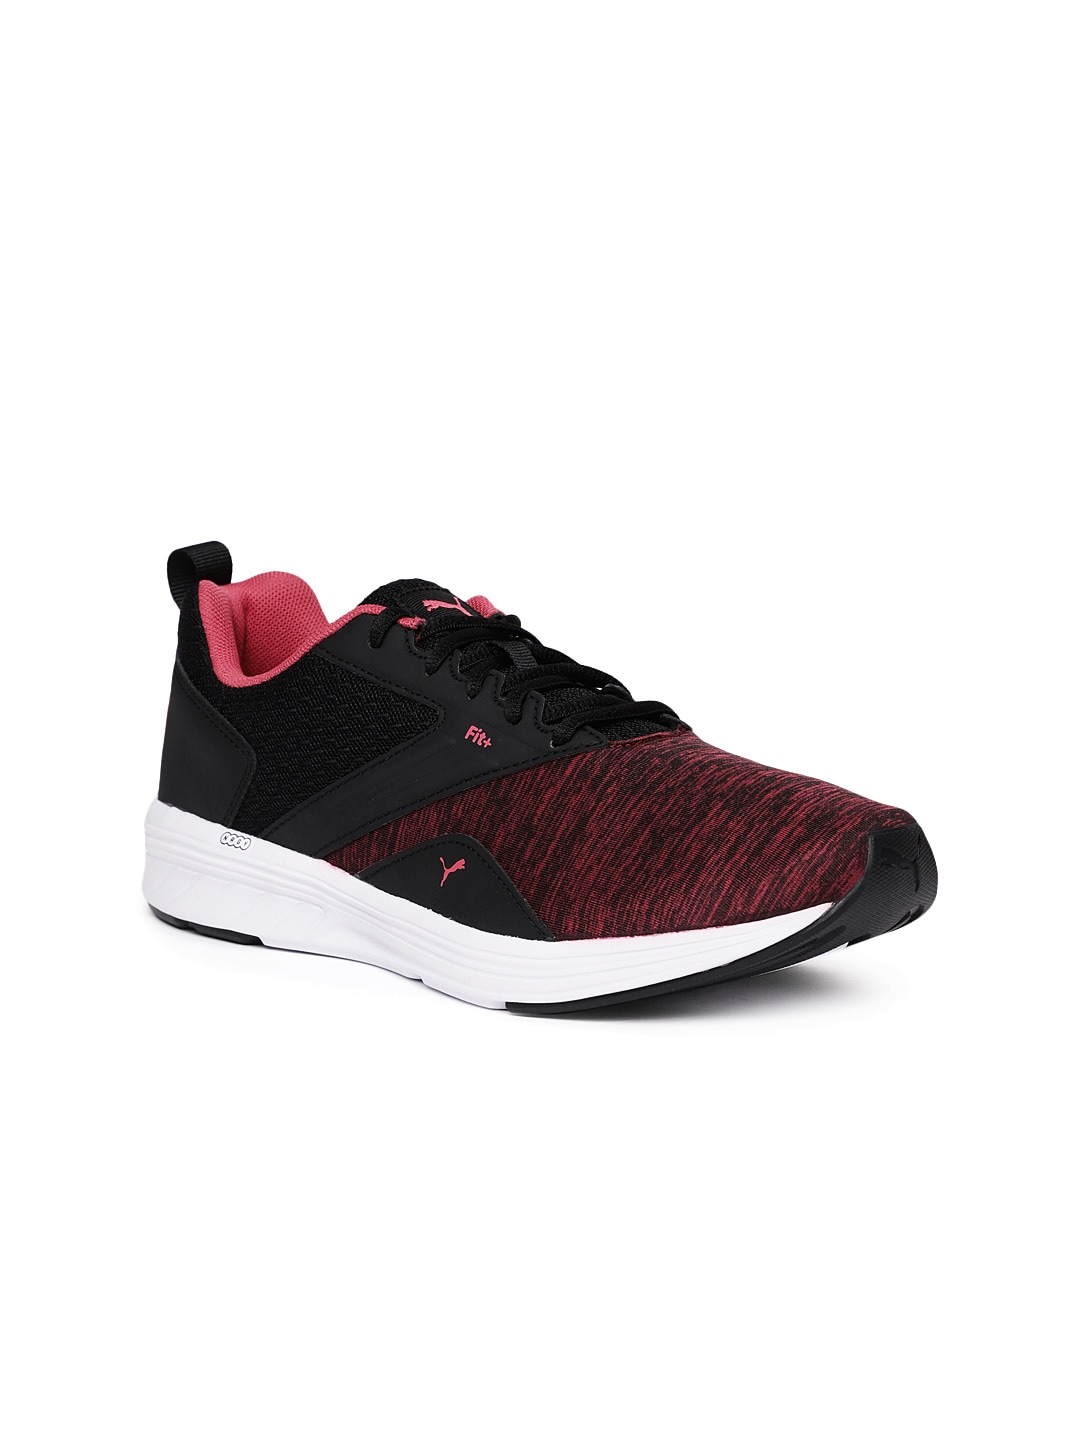 251cce05efa8 Sports Shoes for Women - Buy Women Sports Shoes Online